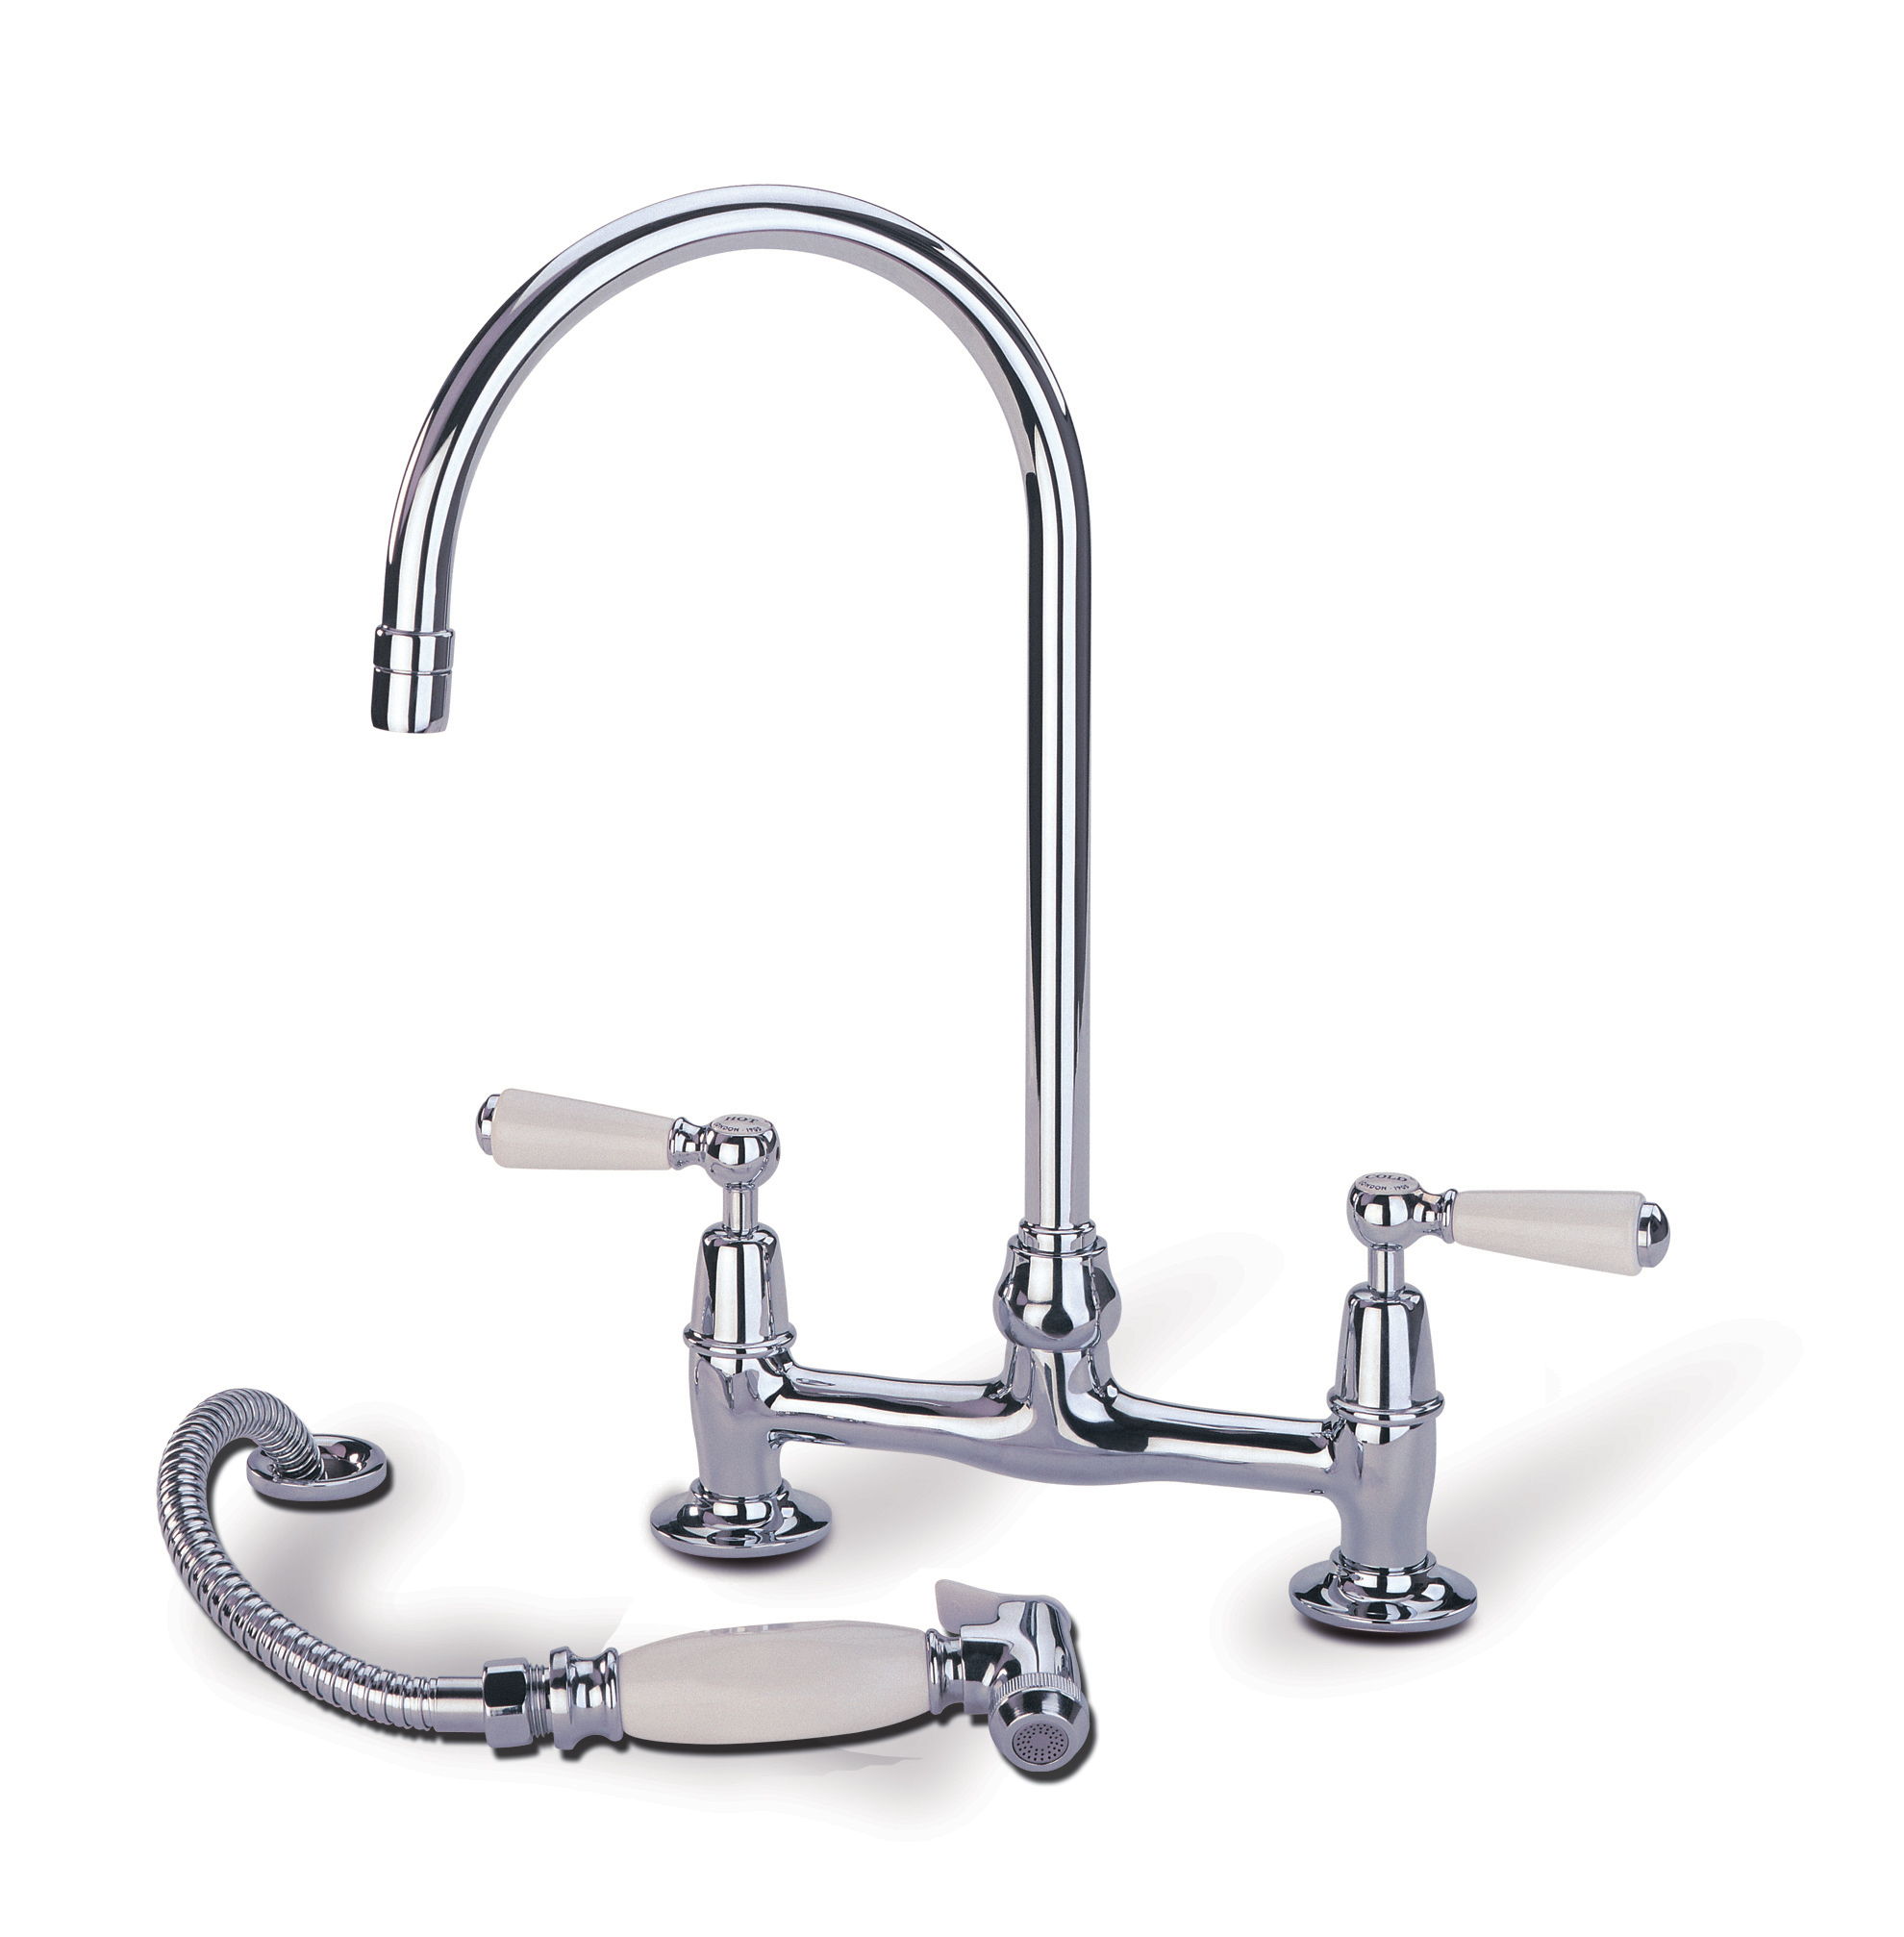 plumbing fixtures unlacquered brass kitchen faucet Because all of our plumbing fixtures will be in unlacquered brass we wanted to order them as soon as possible to give them plenty of time to age